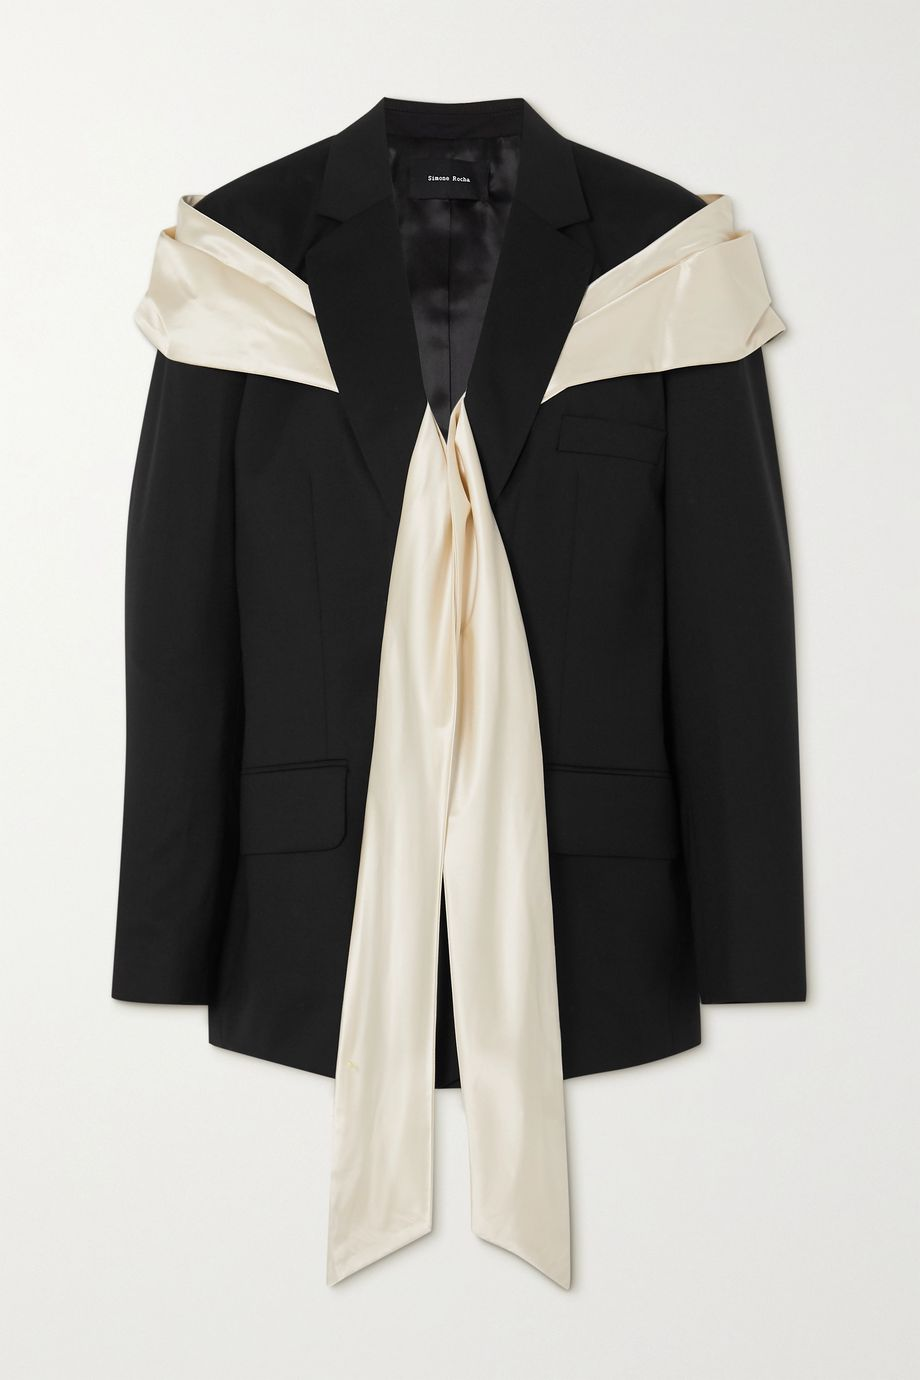 Simone Rocha Bow-detailed silk satin and wool-blend blazer